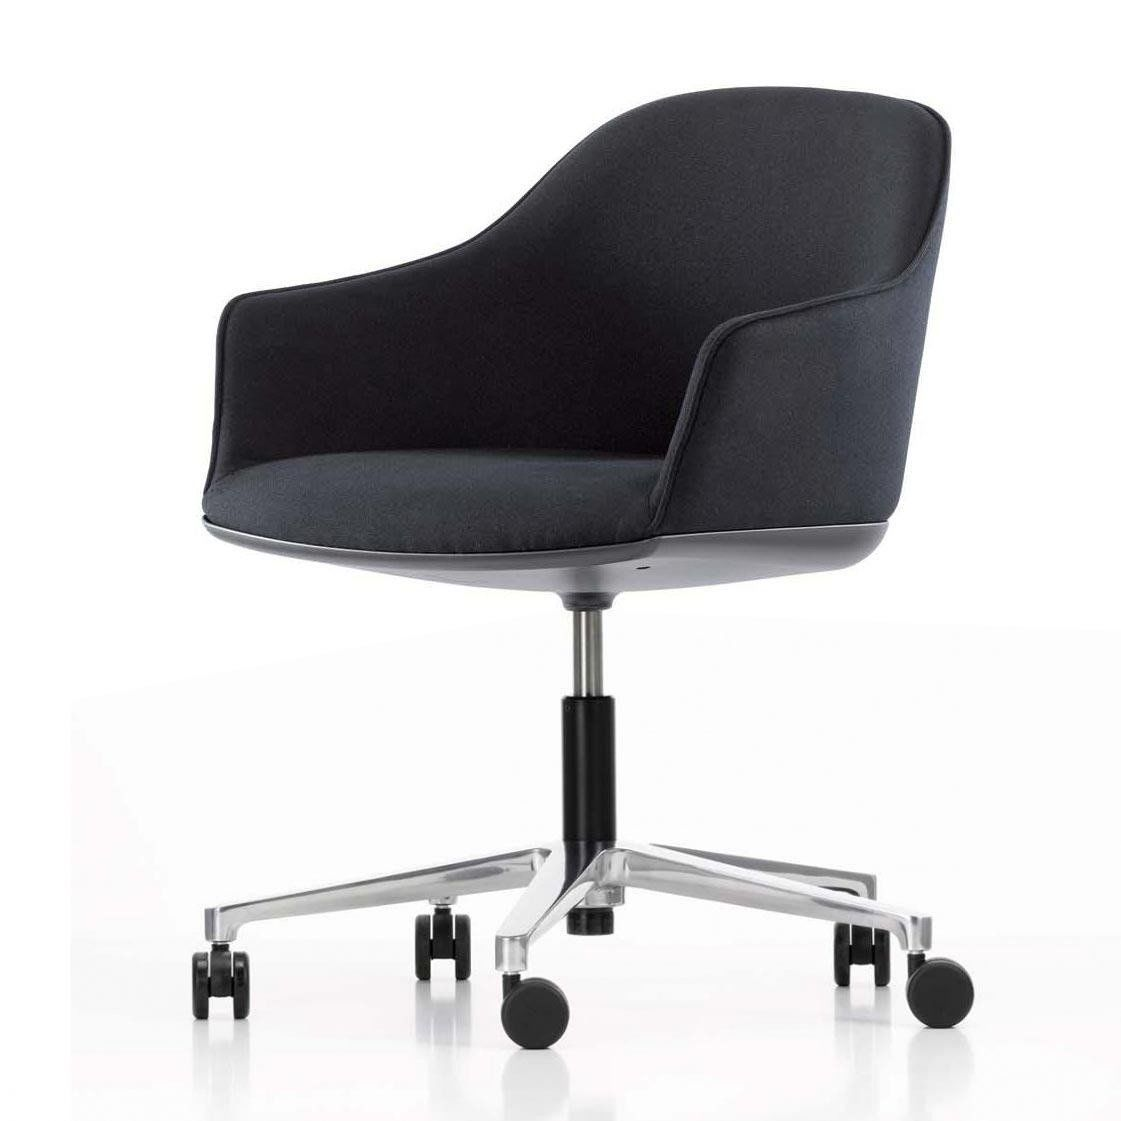 vitra softshell chair office chair vitra. Black Bedroom Furniture Sets. Home Design Ideas